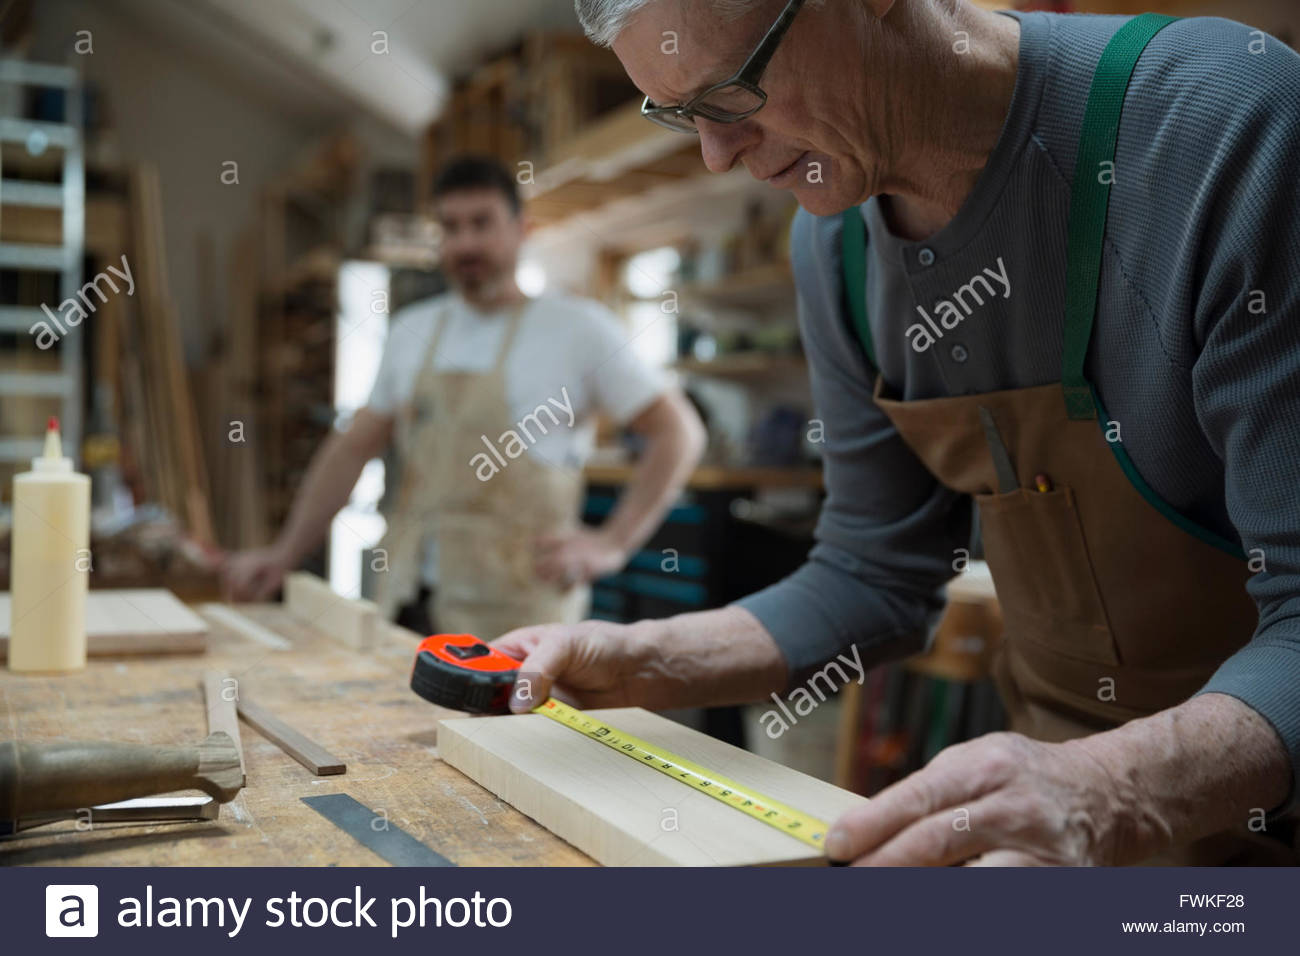 Carpenter measuring wood piece in workshop - Stock Image